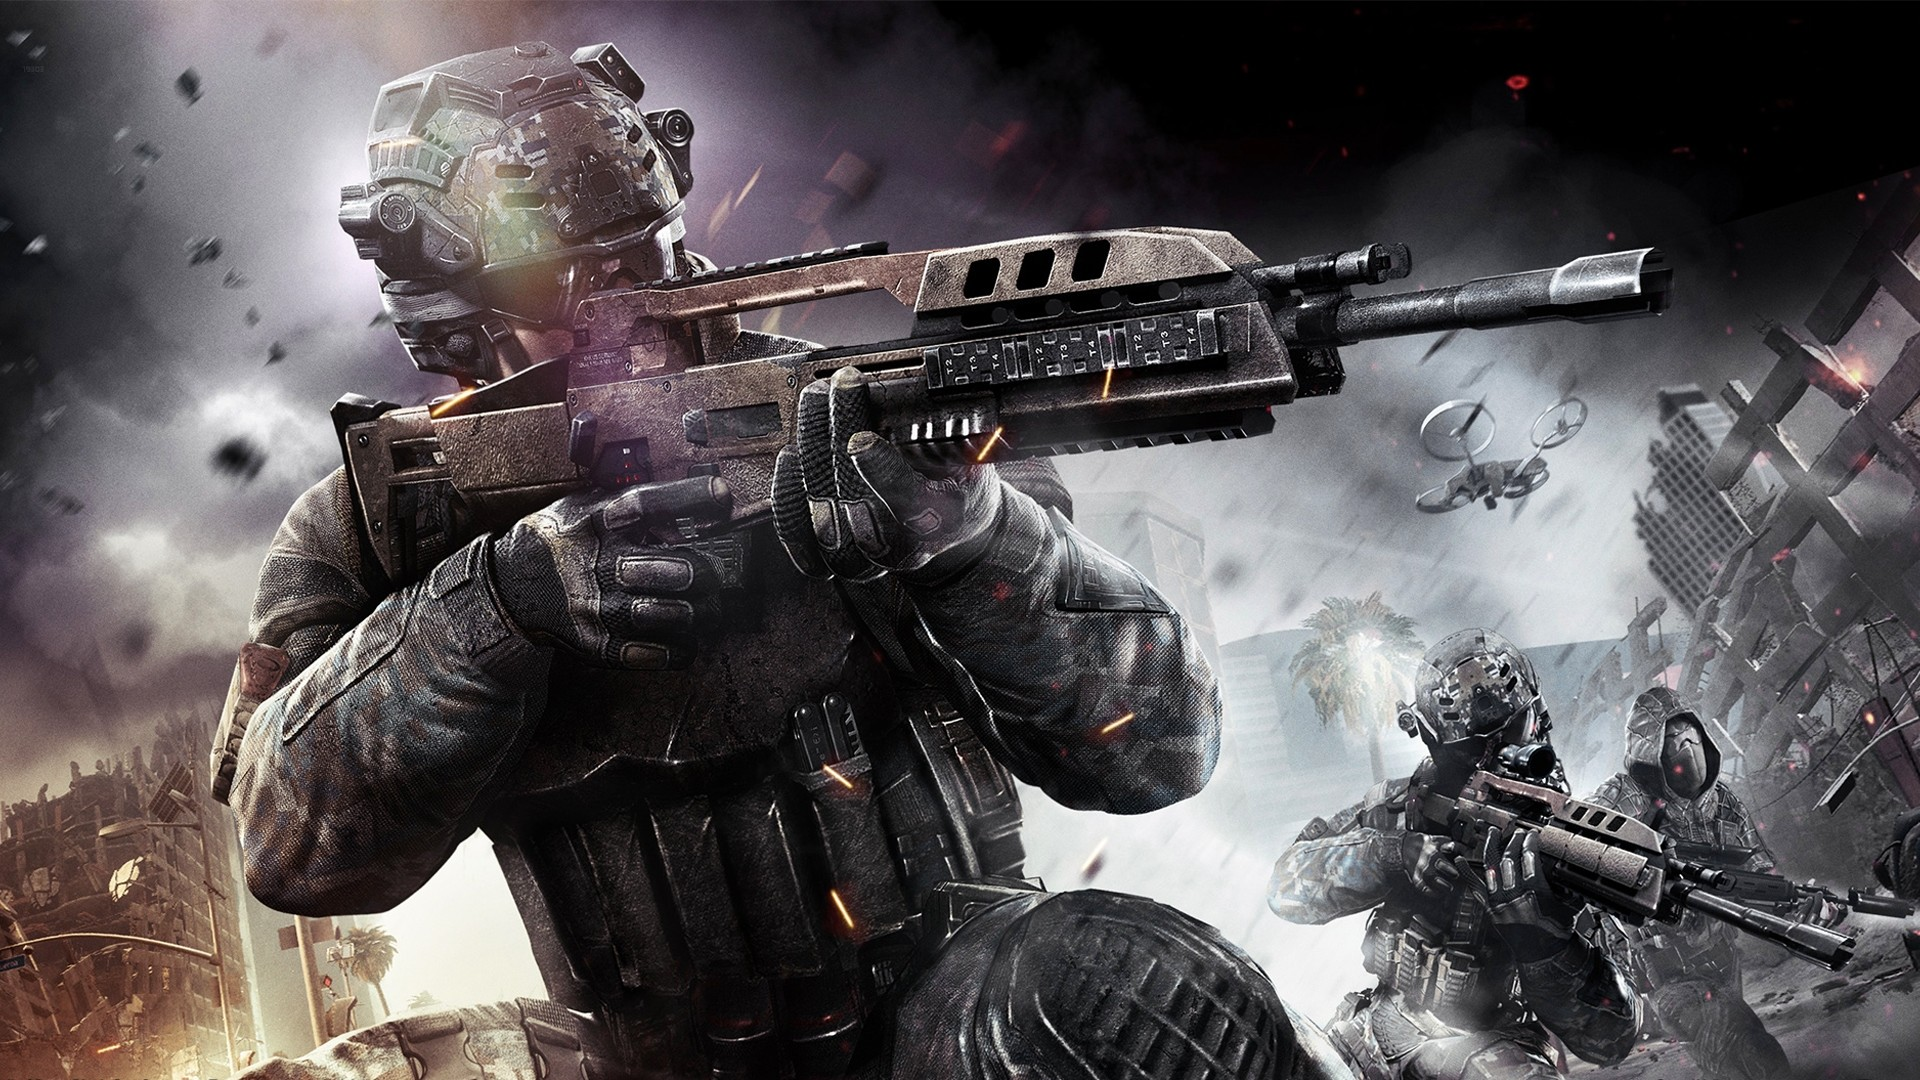 87+ Best HD Call of Duty Black Ops 2 Video Game Wallpapers, 9185 1920×1080